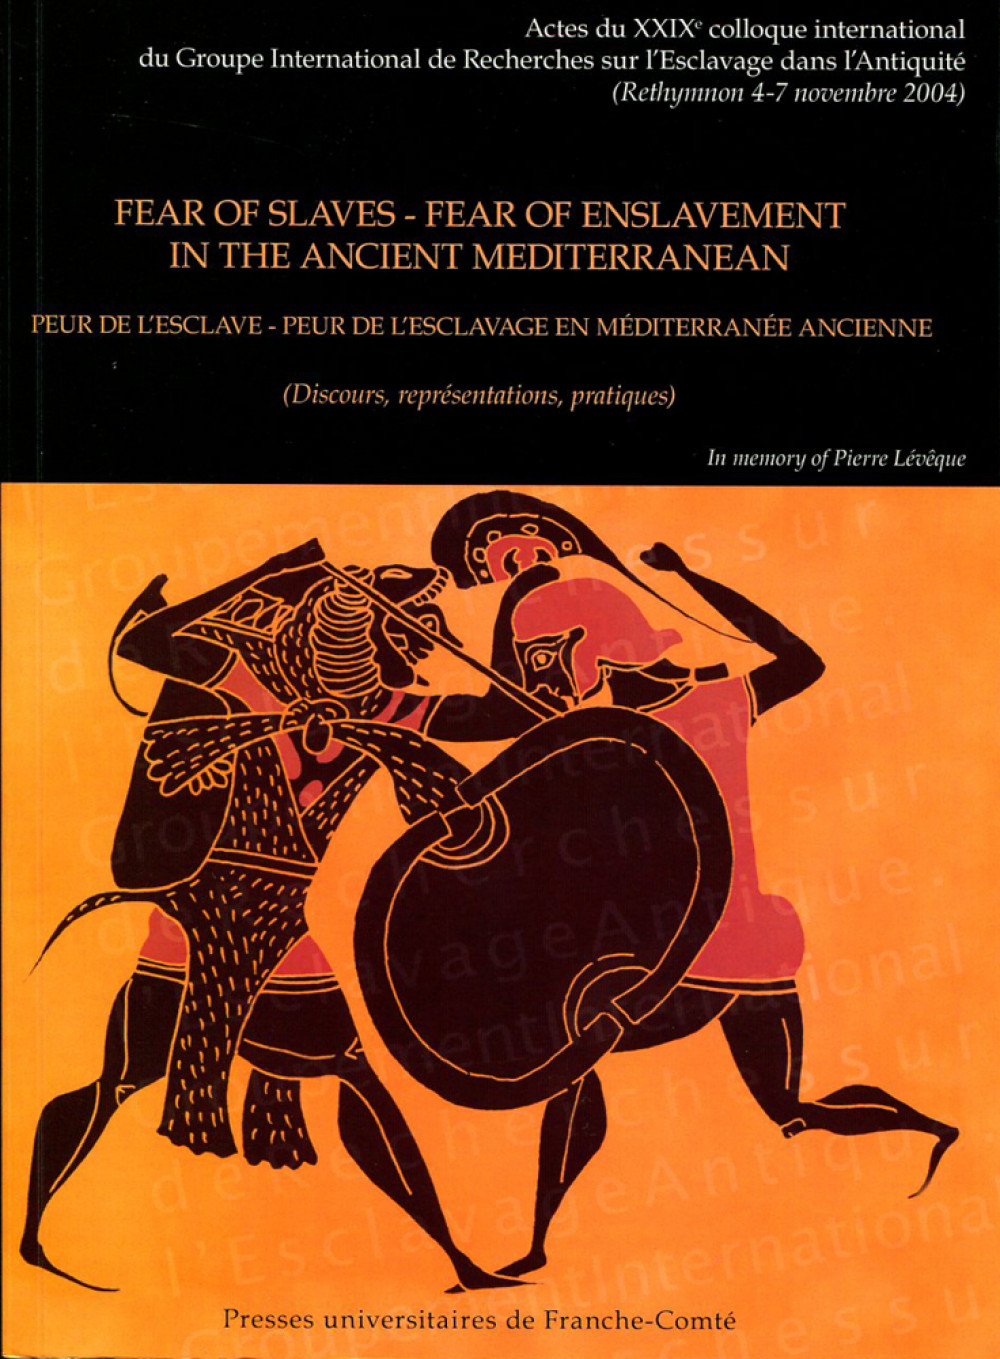 Fear of slaves - Fear of enslavement in the Ancient Mediterranean